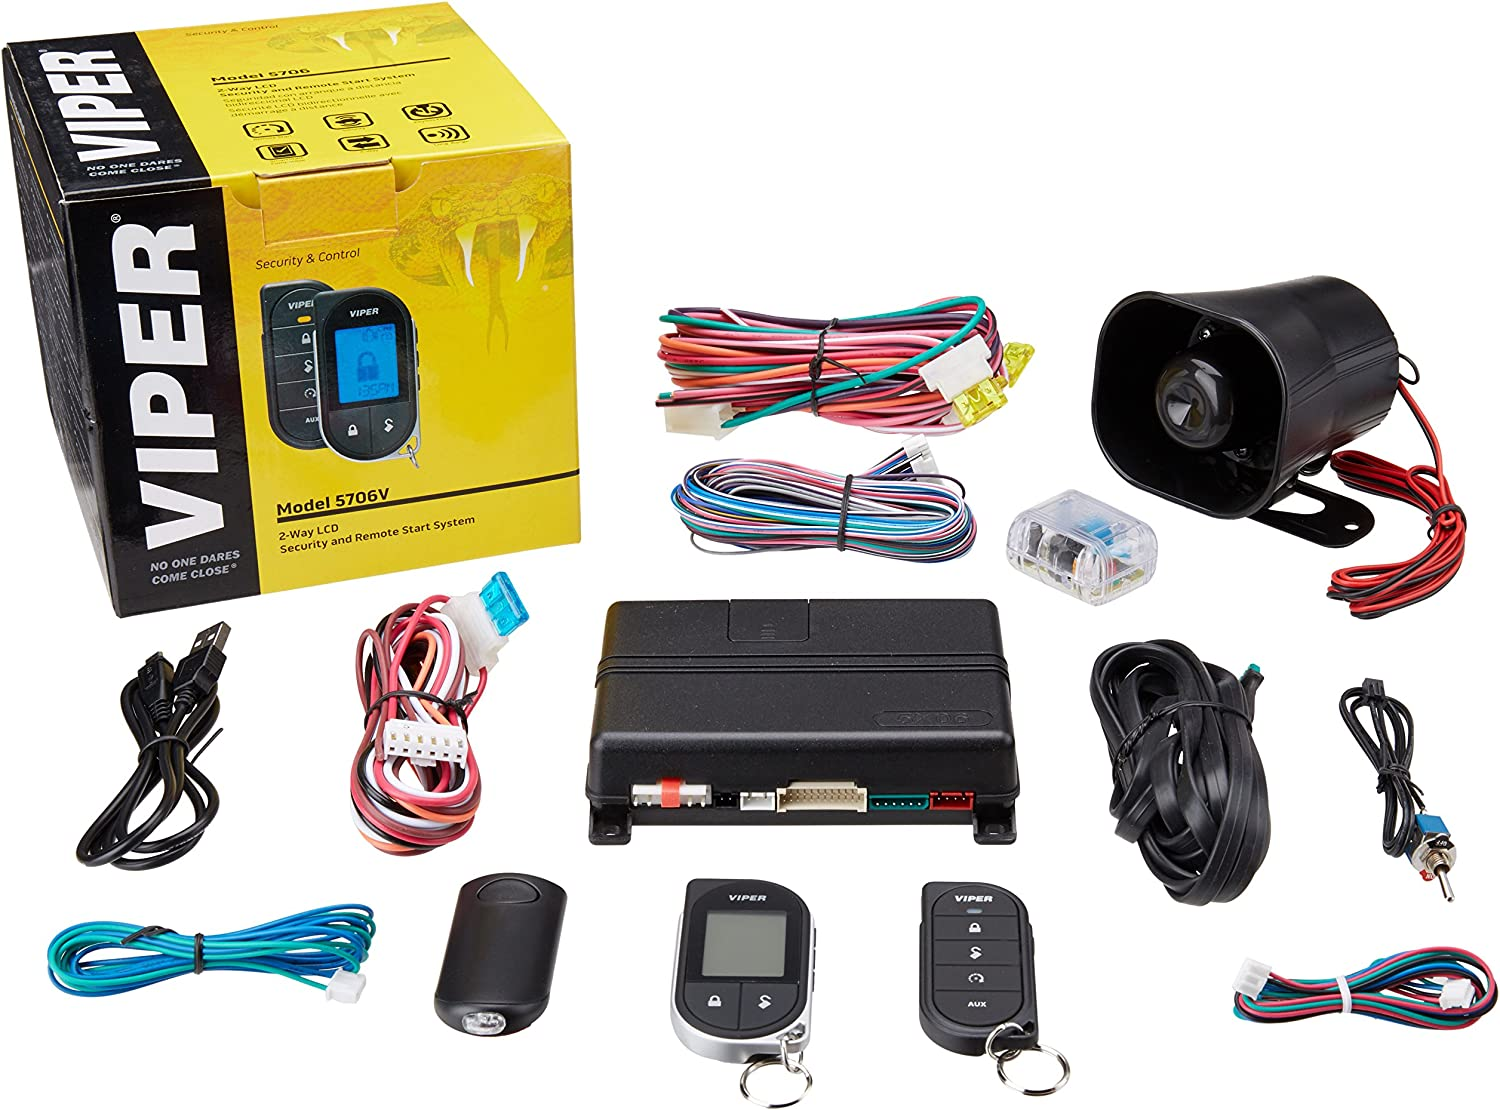 Viper 5706V 2-Way Car Security with Remote Start System on